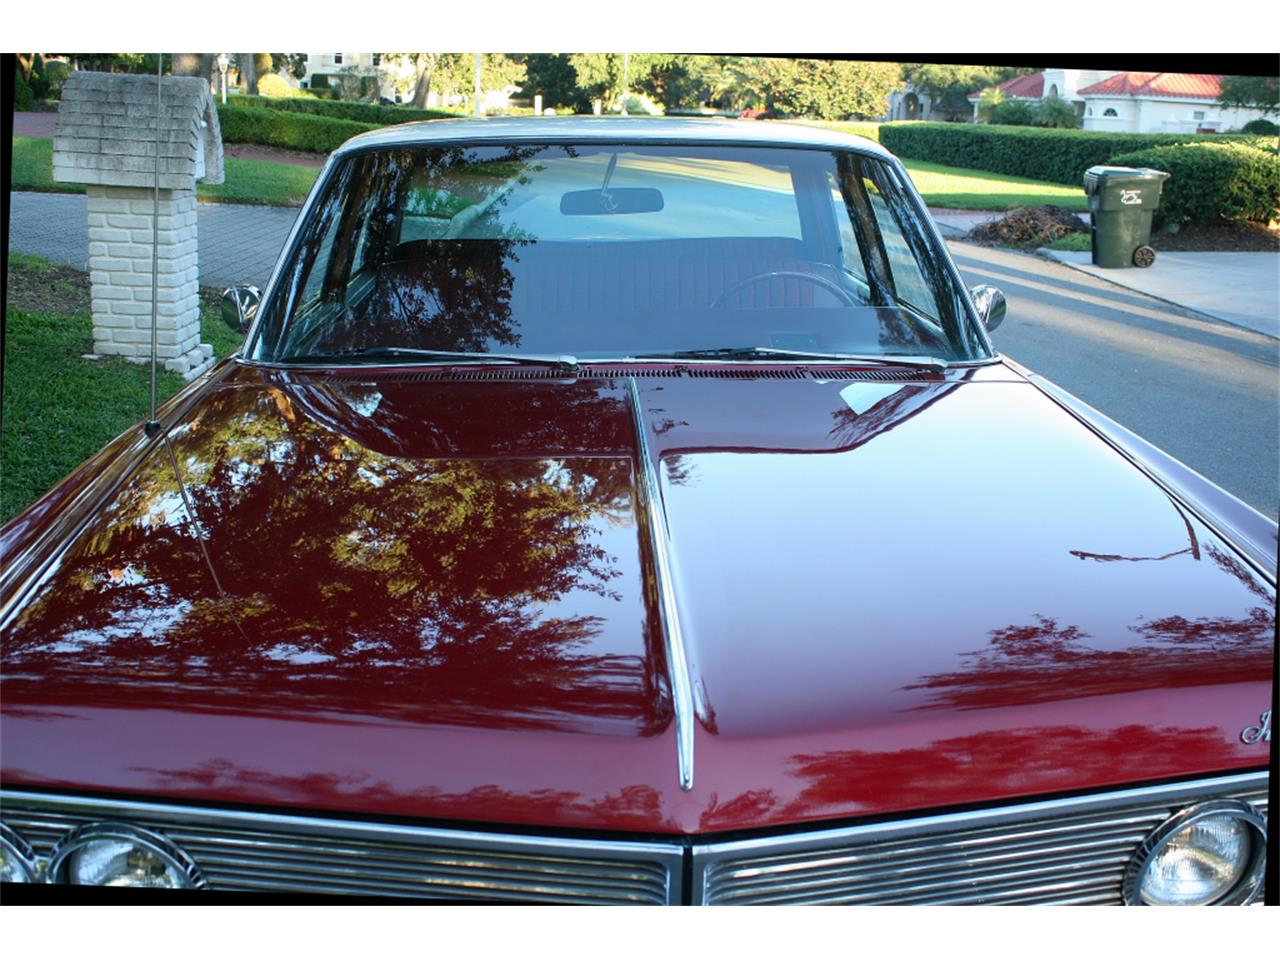 Large Picture of Classic 1968 Chrysler Imperial - $16,500.00 Offered by MJC Classic Cars - MA1H